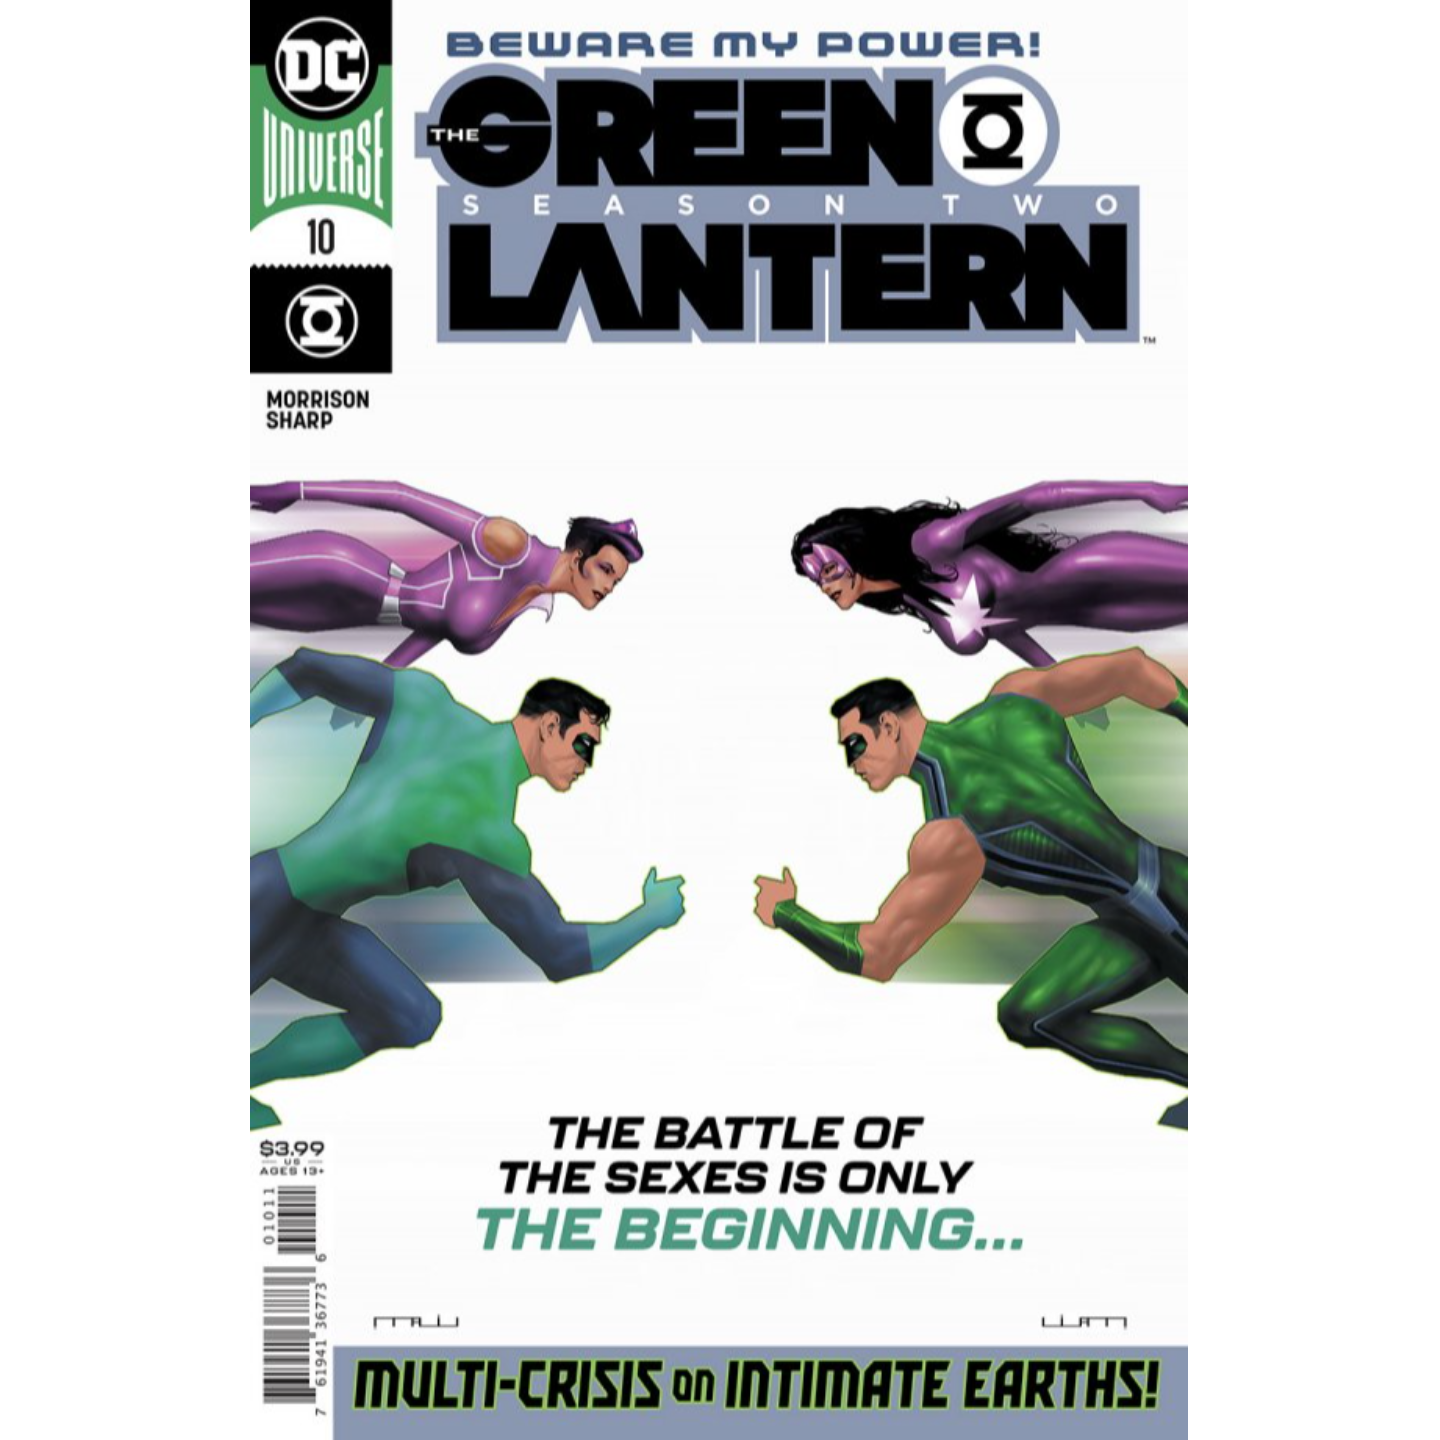 GREEN LANTERN SEASON TWO #10 (OF 12) CVR A LIAM SHARP